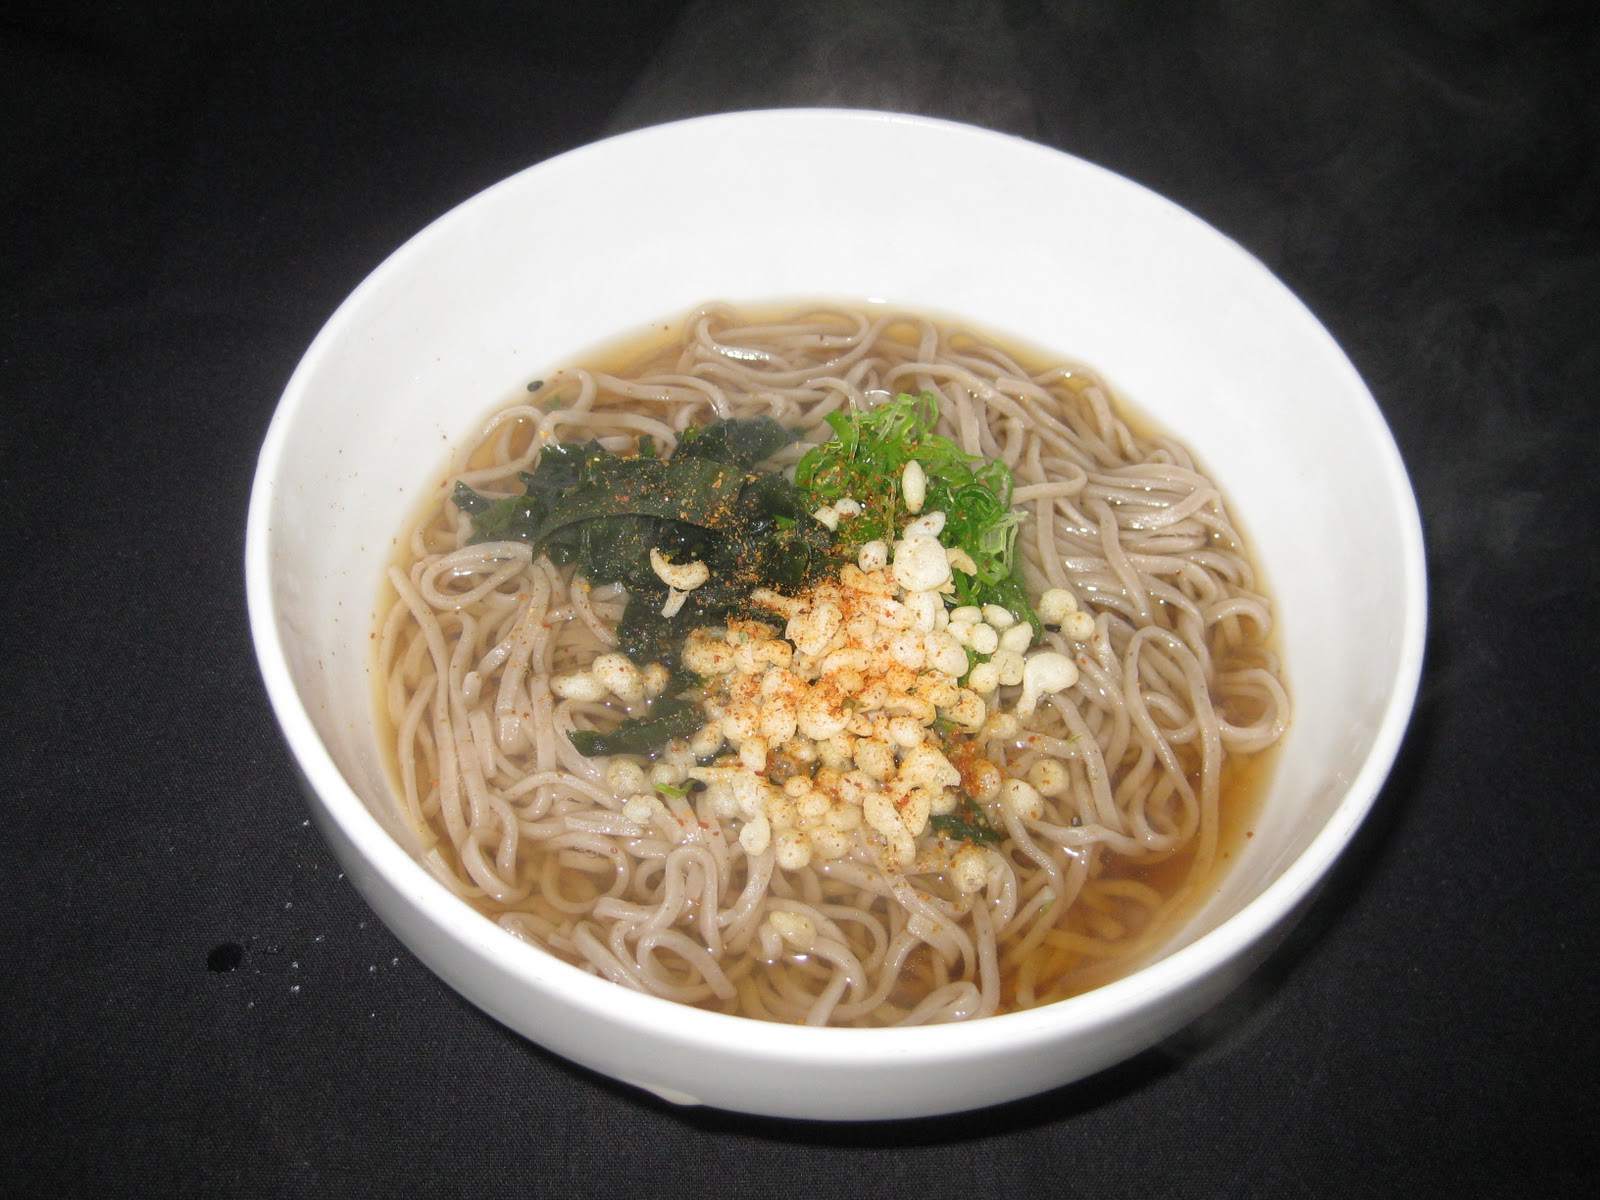 ... is our tradition, Toshi Koshi Soba, means getting over the year soba